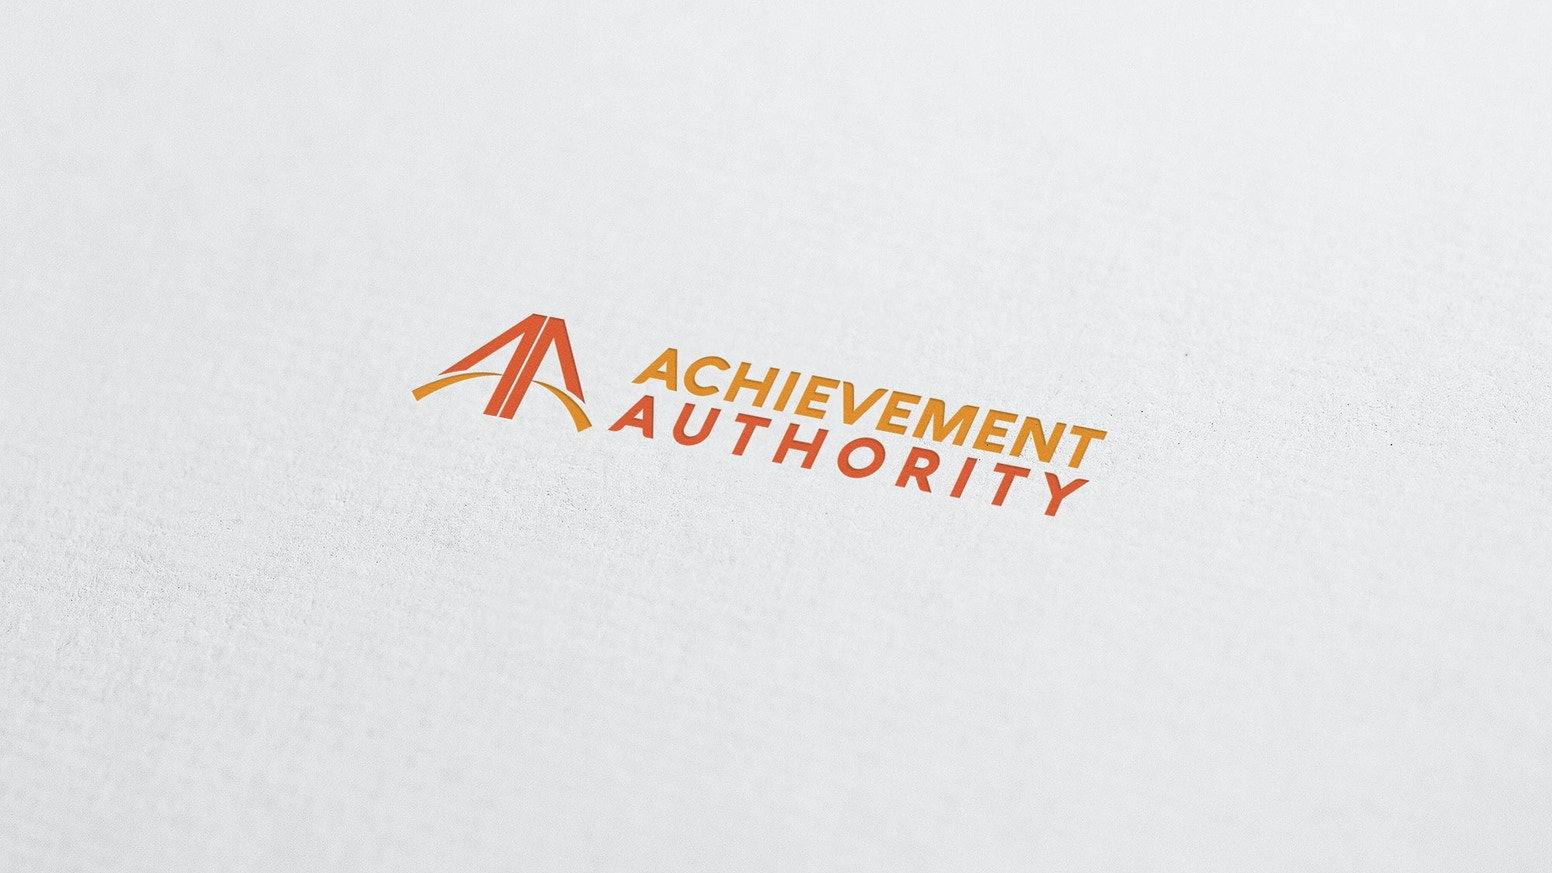 Achievement Authority: Celebrate Gaming Excellence by